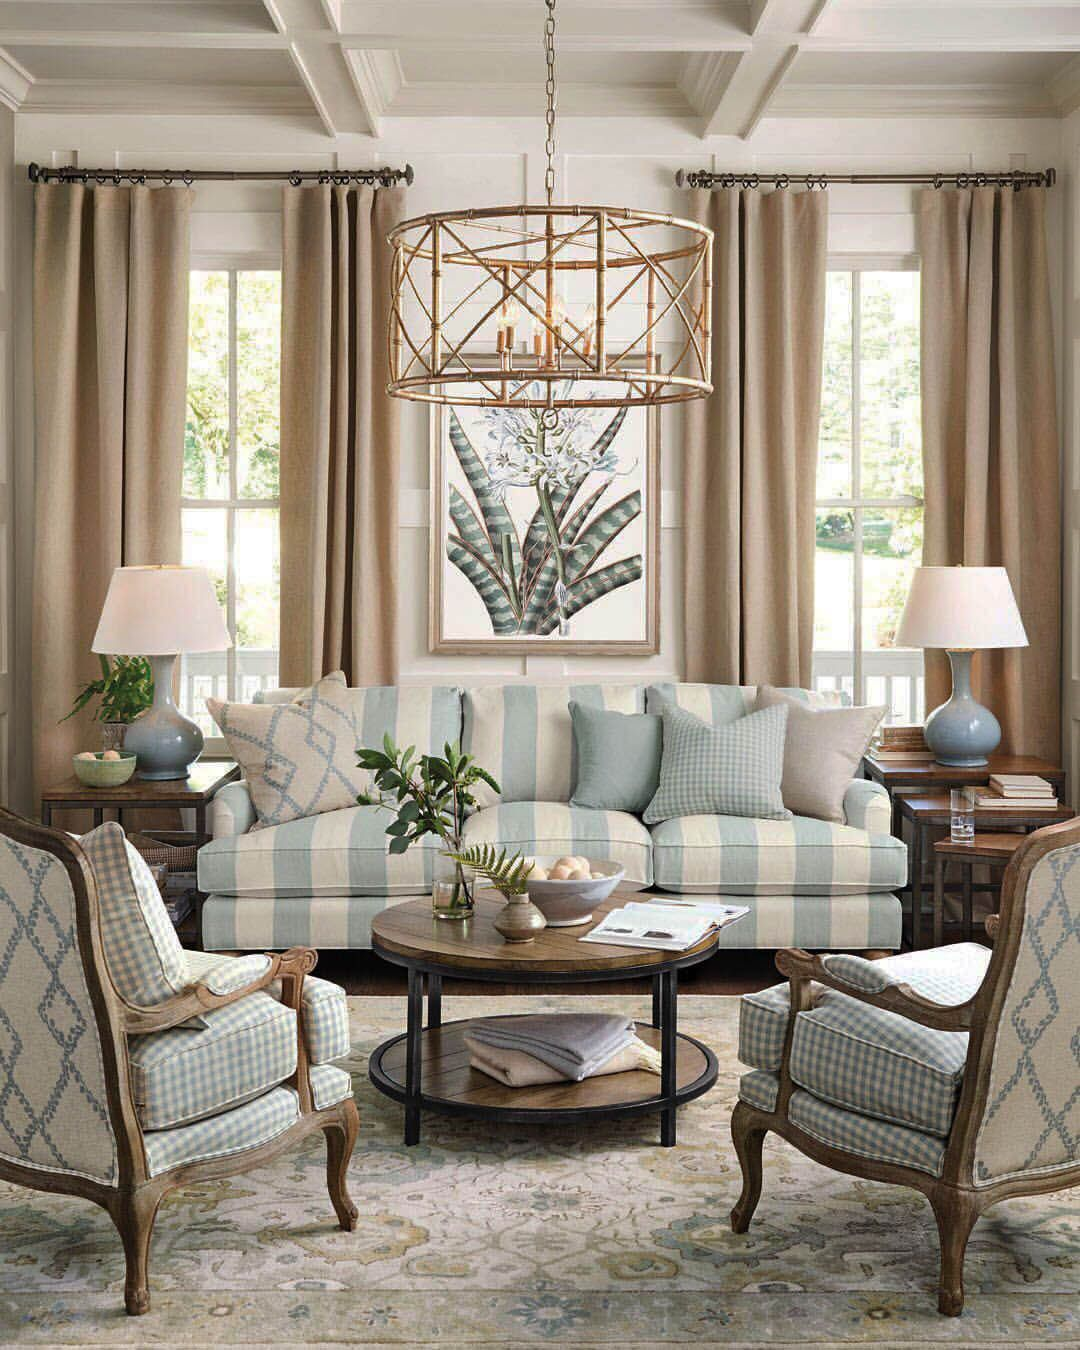 New living room furniture near me exclusive on zelta home ...